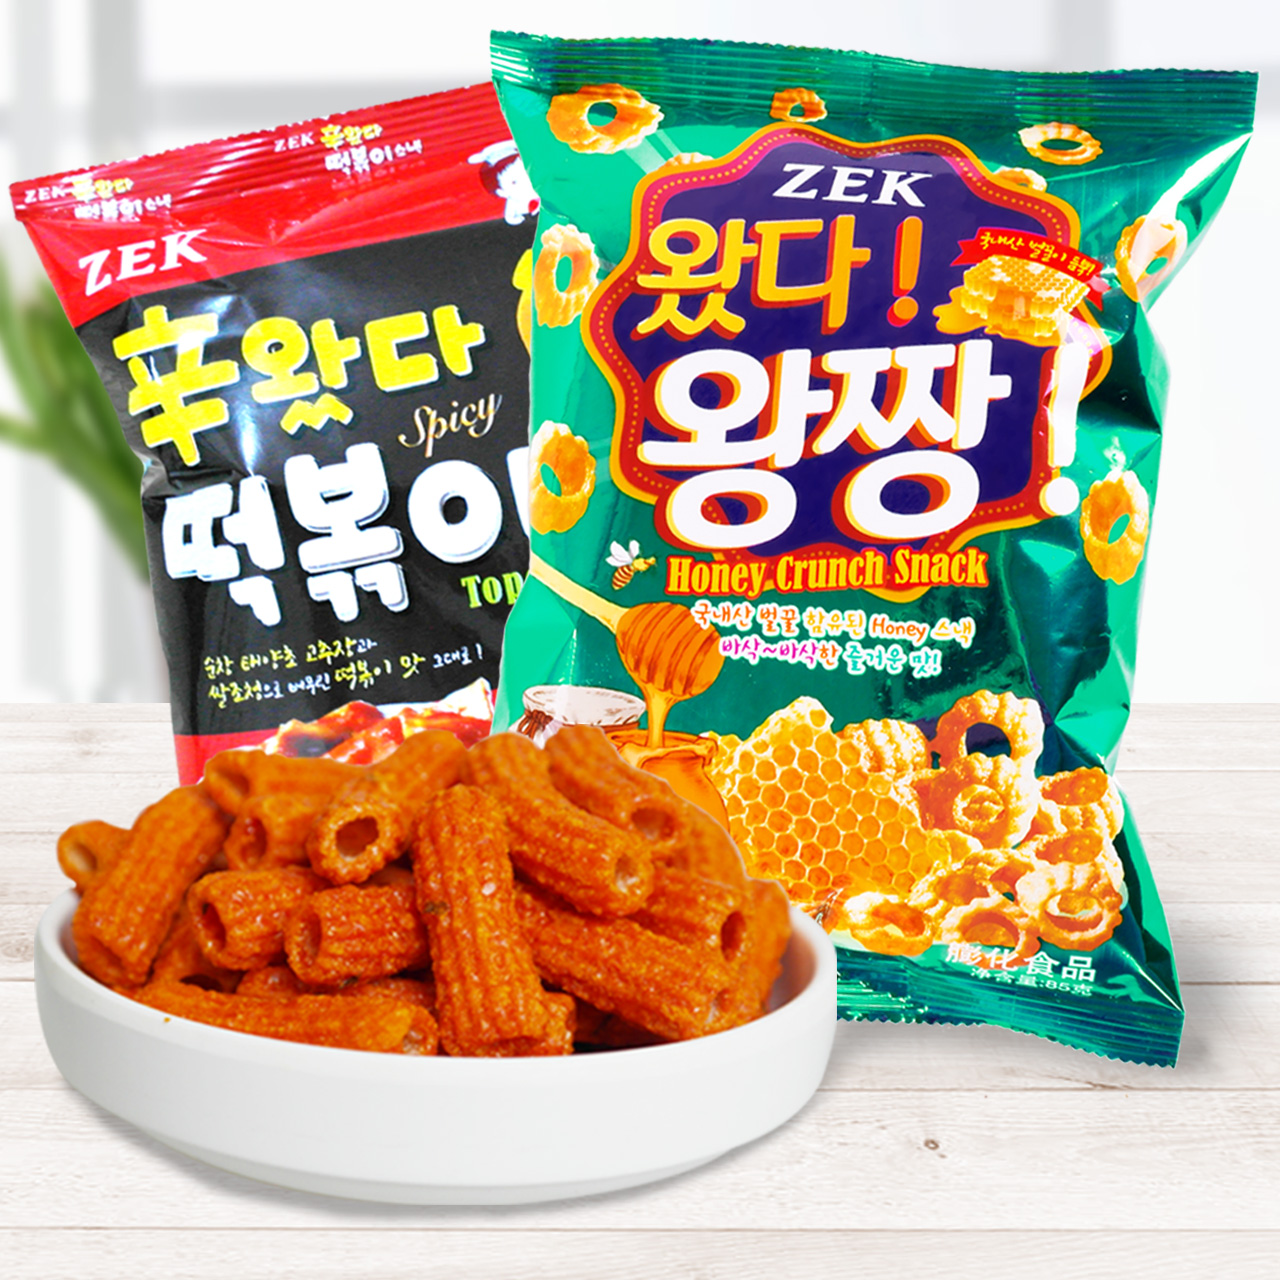 Korea zek honey crisp crisp music/tteokbokki article 85g zero food imported from korea dse-25 children Snacks